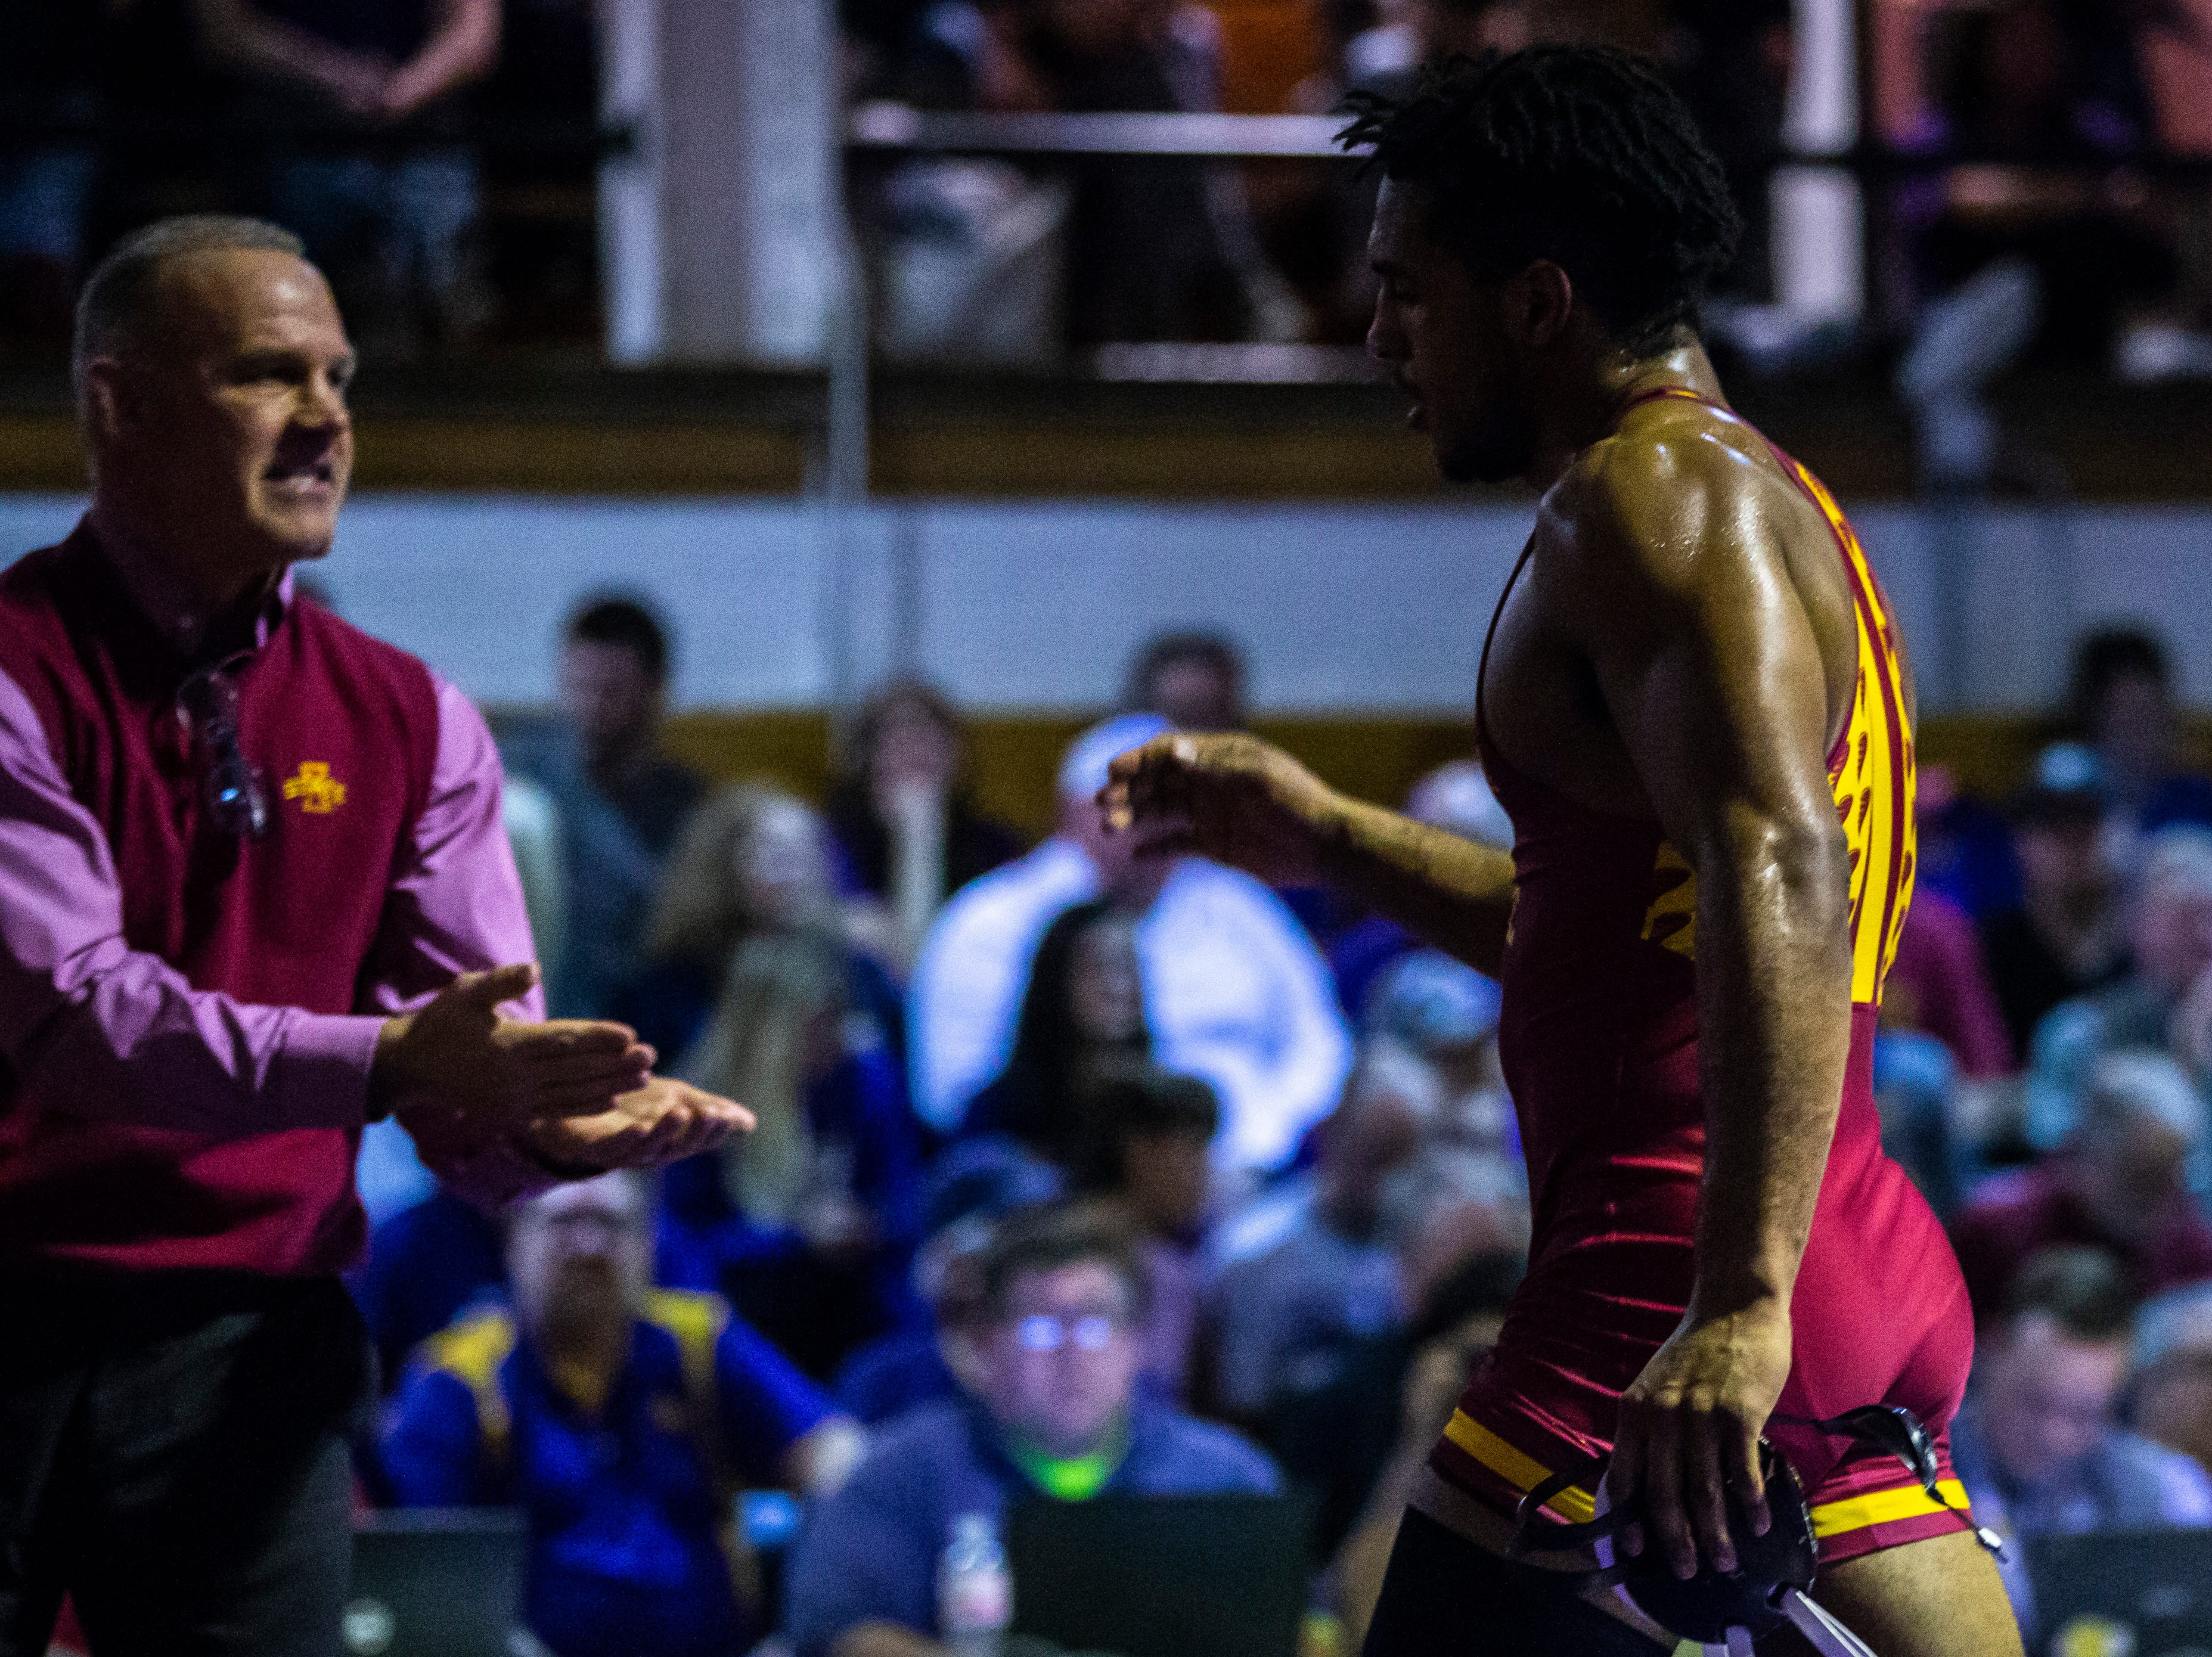 Iowa State's Sam Colbray gets a high-five from head coach Kevin Dresser, left, after scoring a decision over Northern Iowa's Drew Foster at 184 during a NCAA Big 12 wrestling dual on Thursday, Feb. 21, 2019 at the West Gymnasium in Cedar Falls, Iowa.